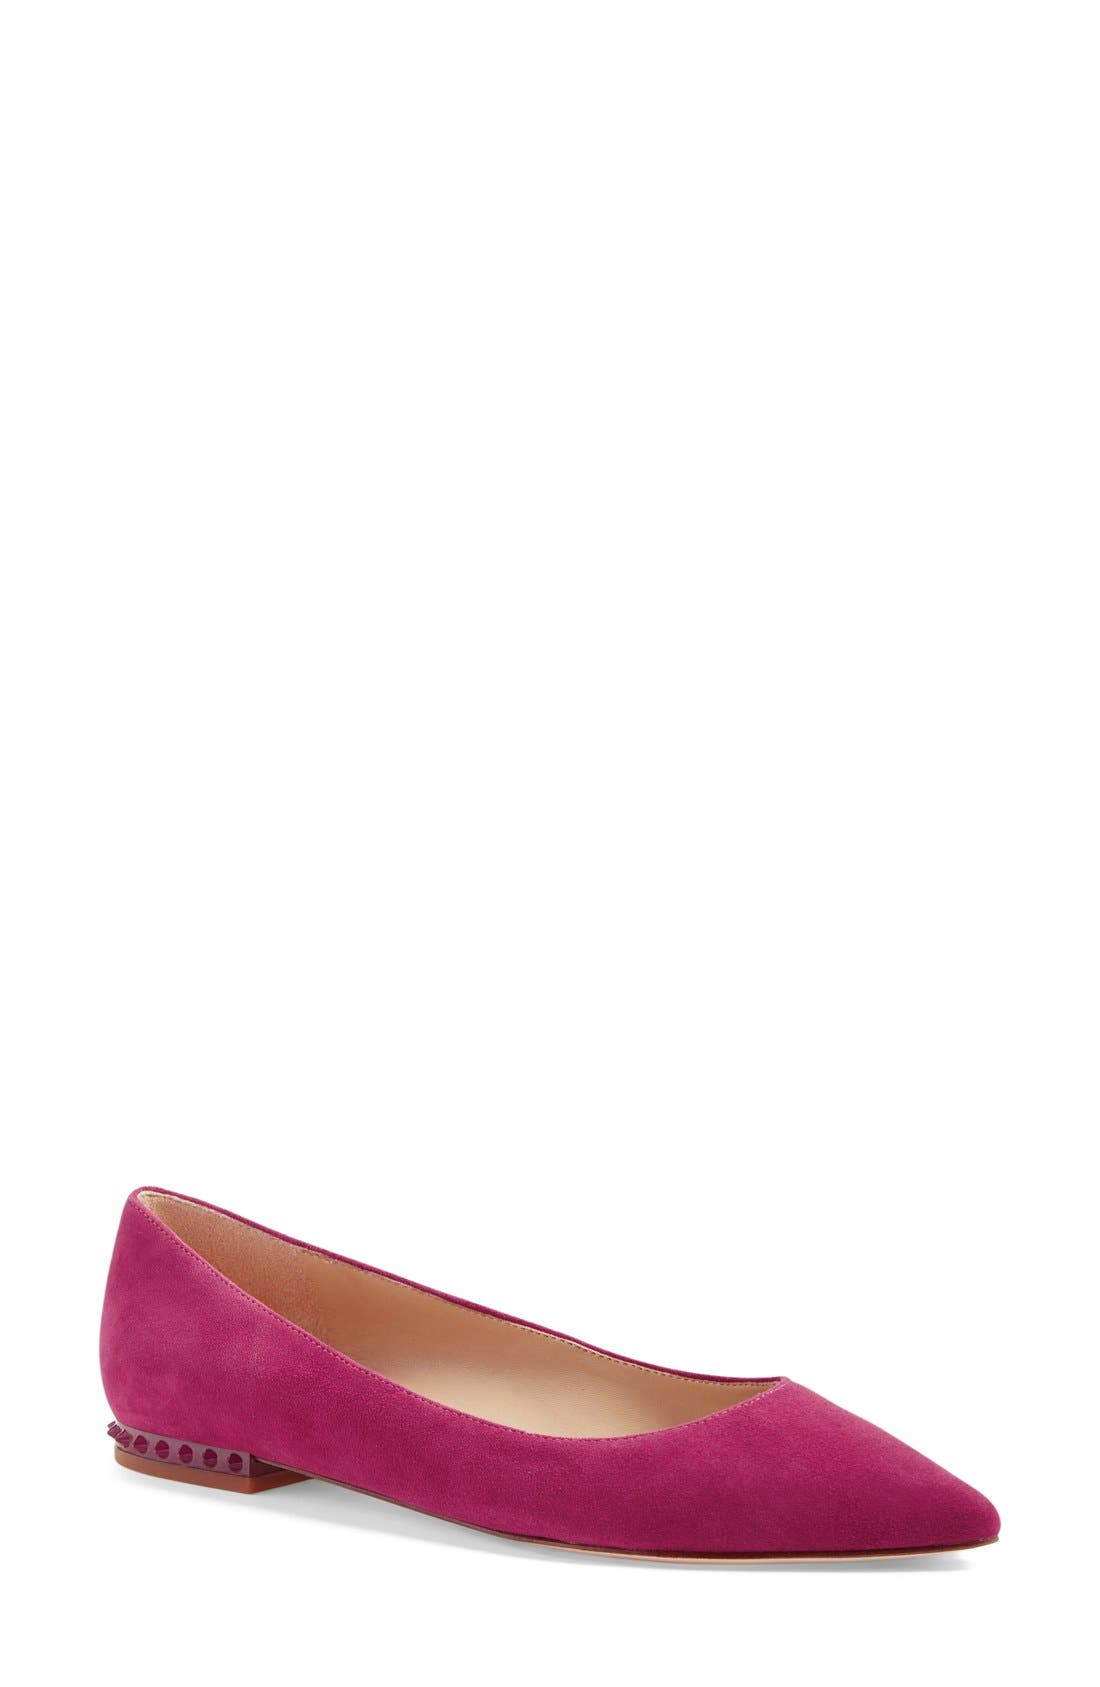 Main Image - Sam Edelman 'Reyanne' Spike Rand Pointy Toe Flat (Women)